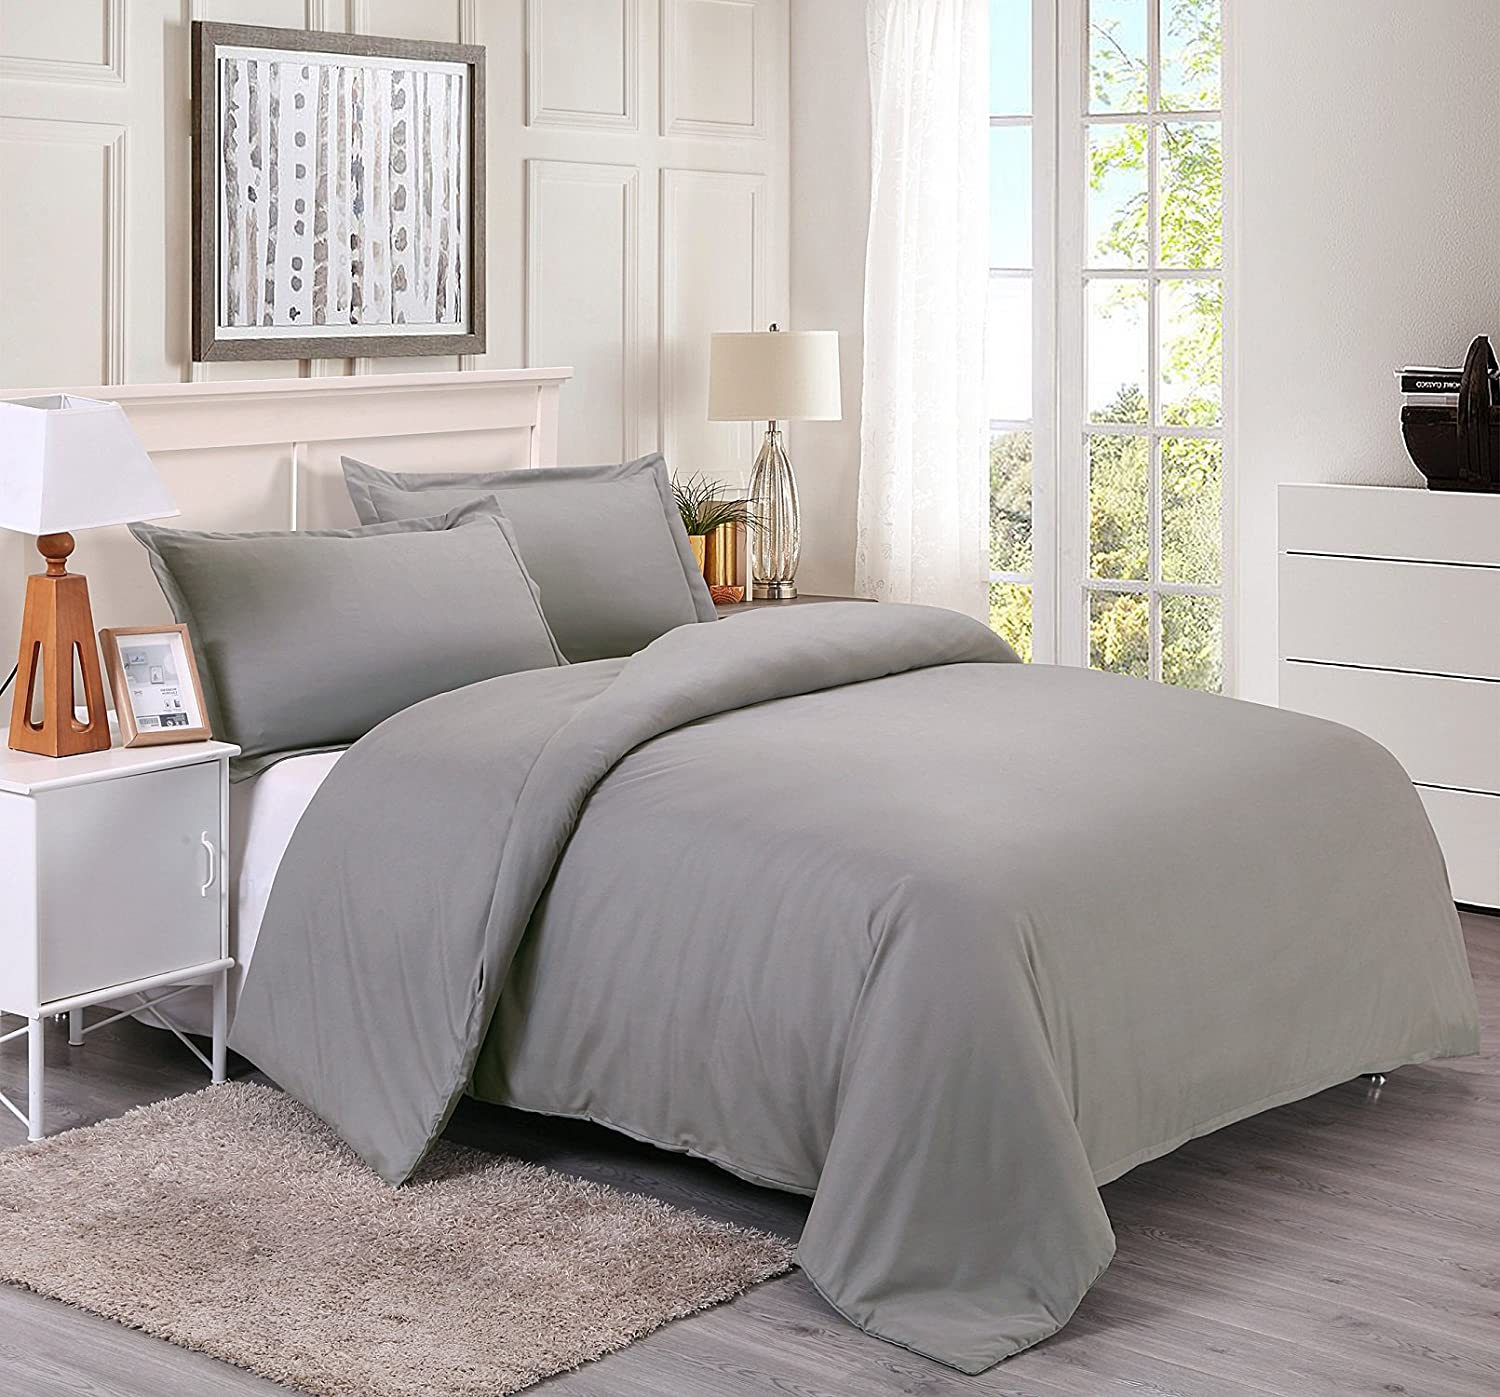 category sets queen cover sizeilt extraordinaryedroom living bedroom bedspread with set voodoolk sheet delightful and bedding pink delectable greyedspread gray comforter roomedding dark grey unflappable kmyehai size amazing greyeen comforters